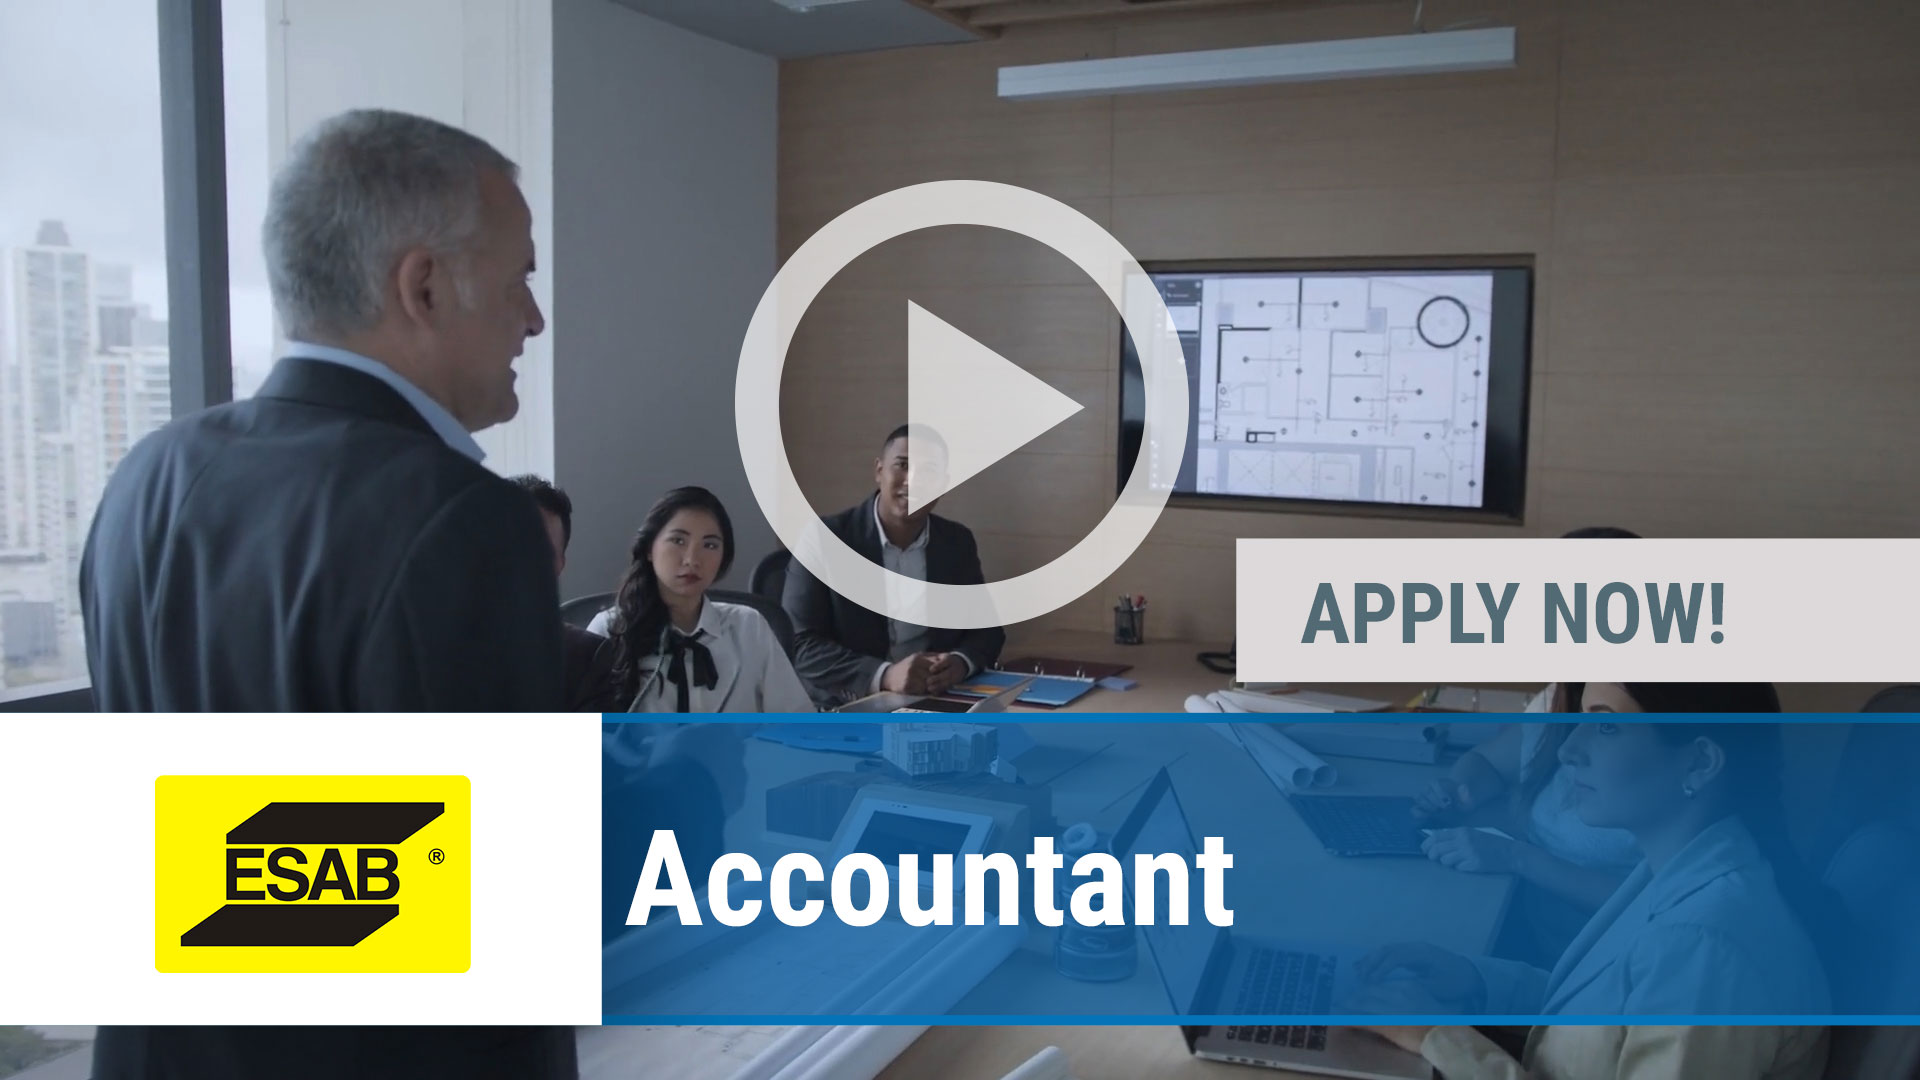 Watch our careers video for available job opening Accountant in Budapest SSC, Hungary